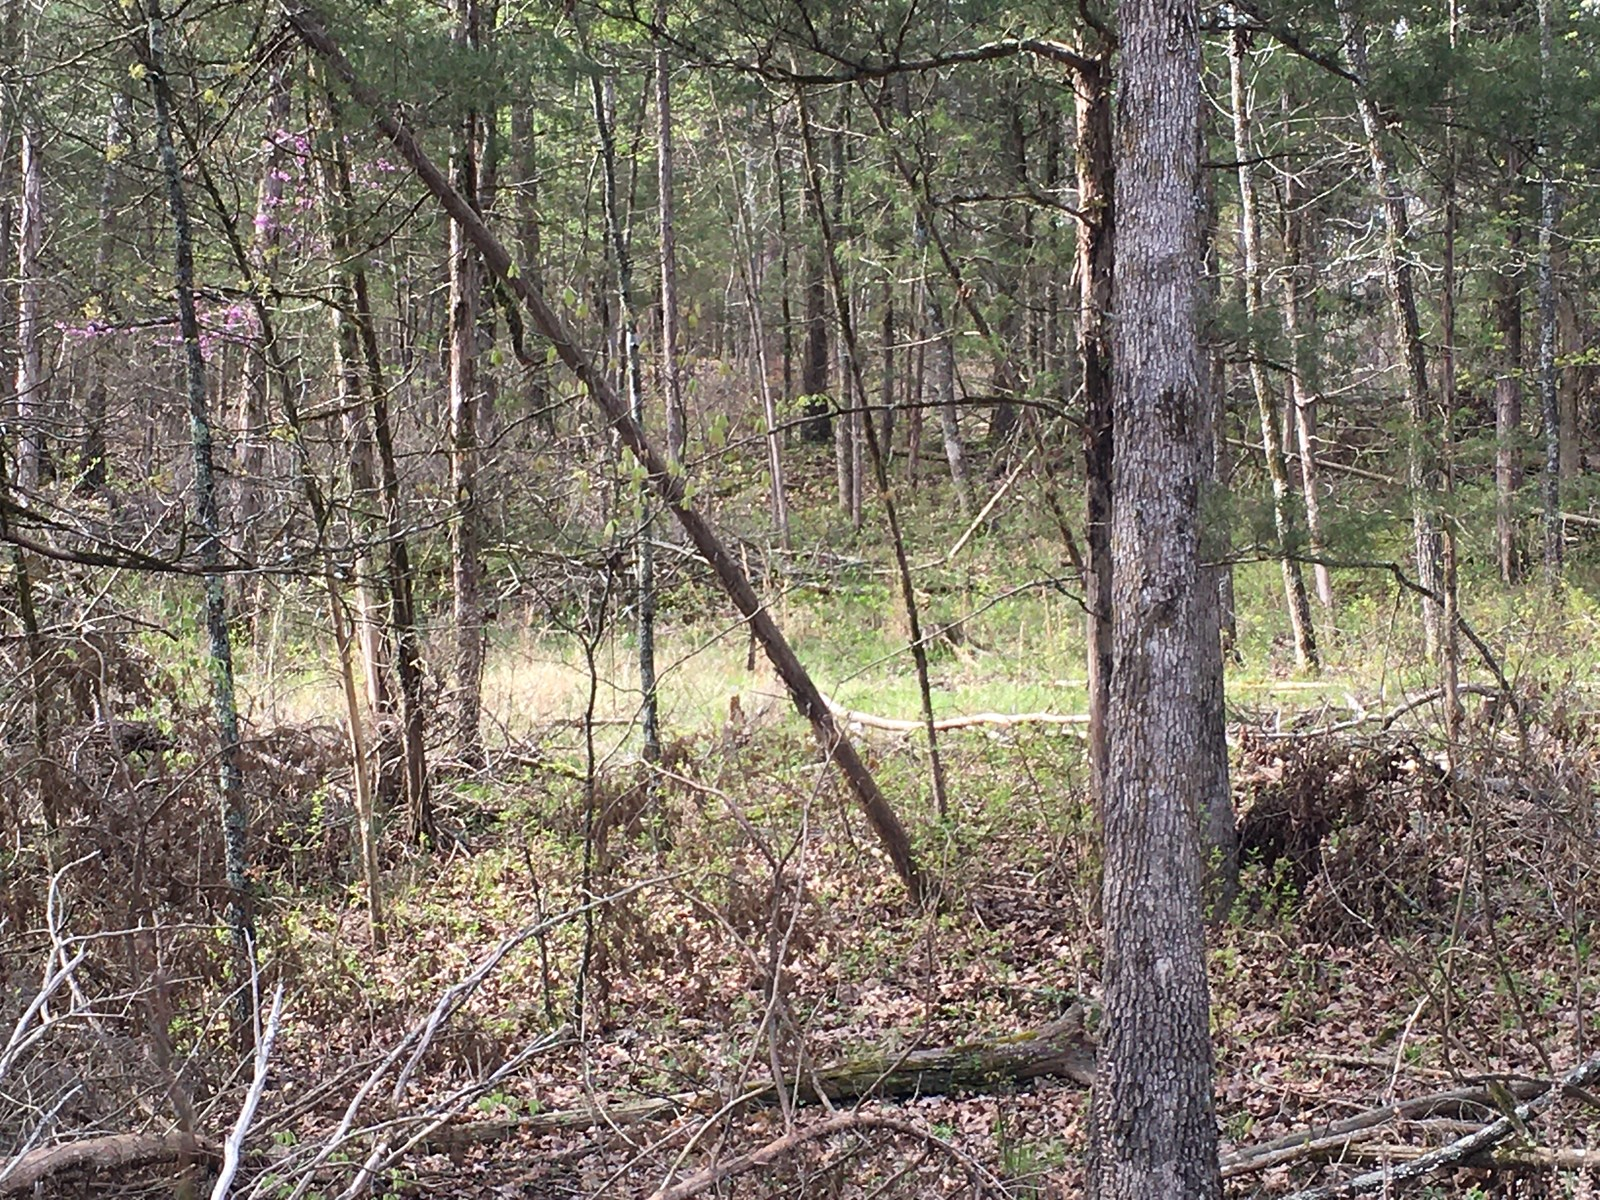 Hunting Property For Sale north central Arkansas, with creek